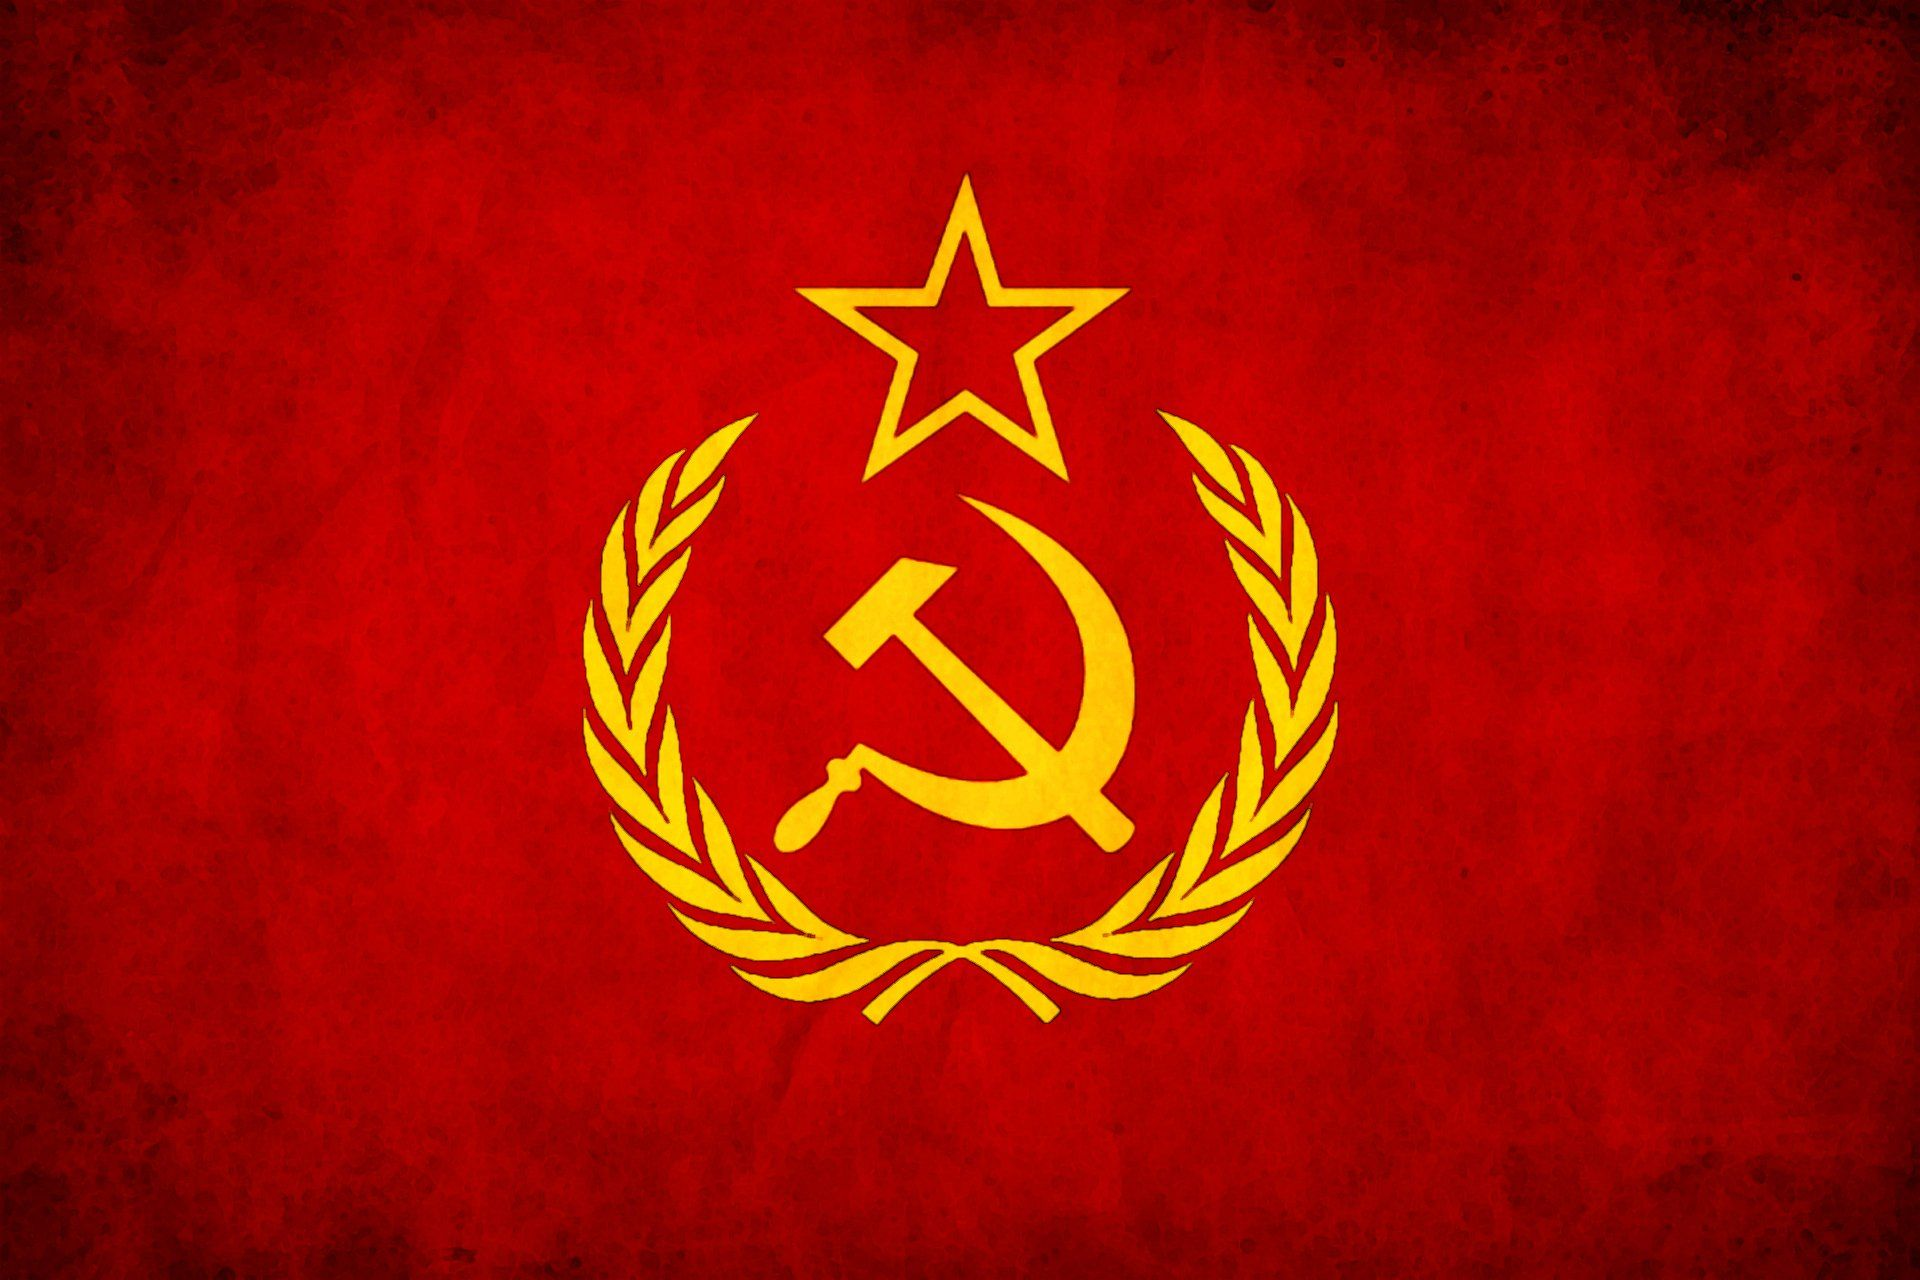 Soviet Russia Wallpapers   Top Soviet Russia Backgrounds 1920x1280